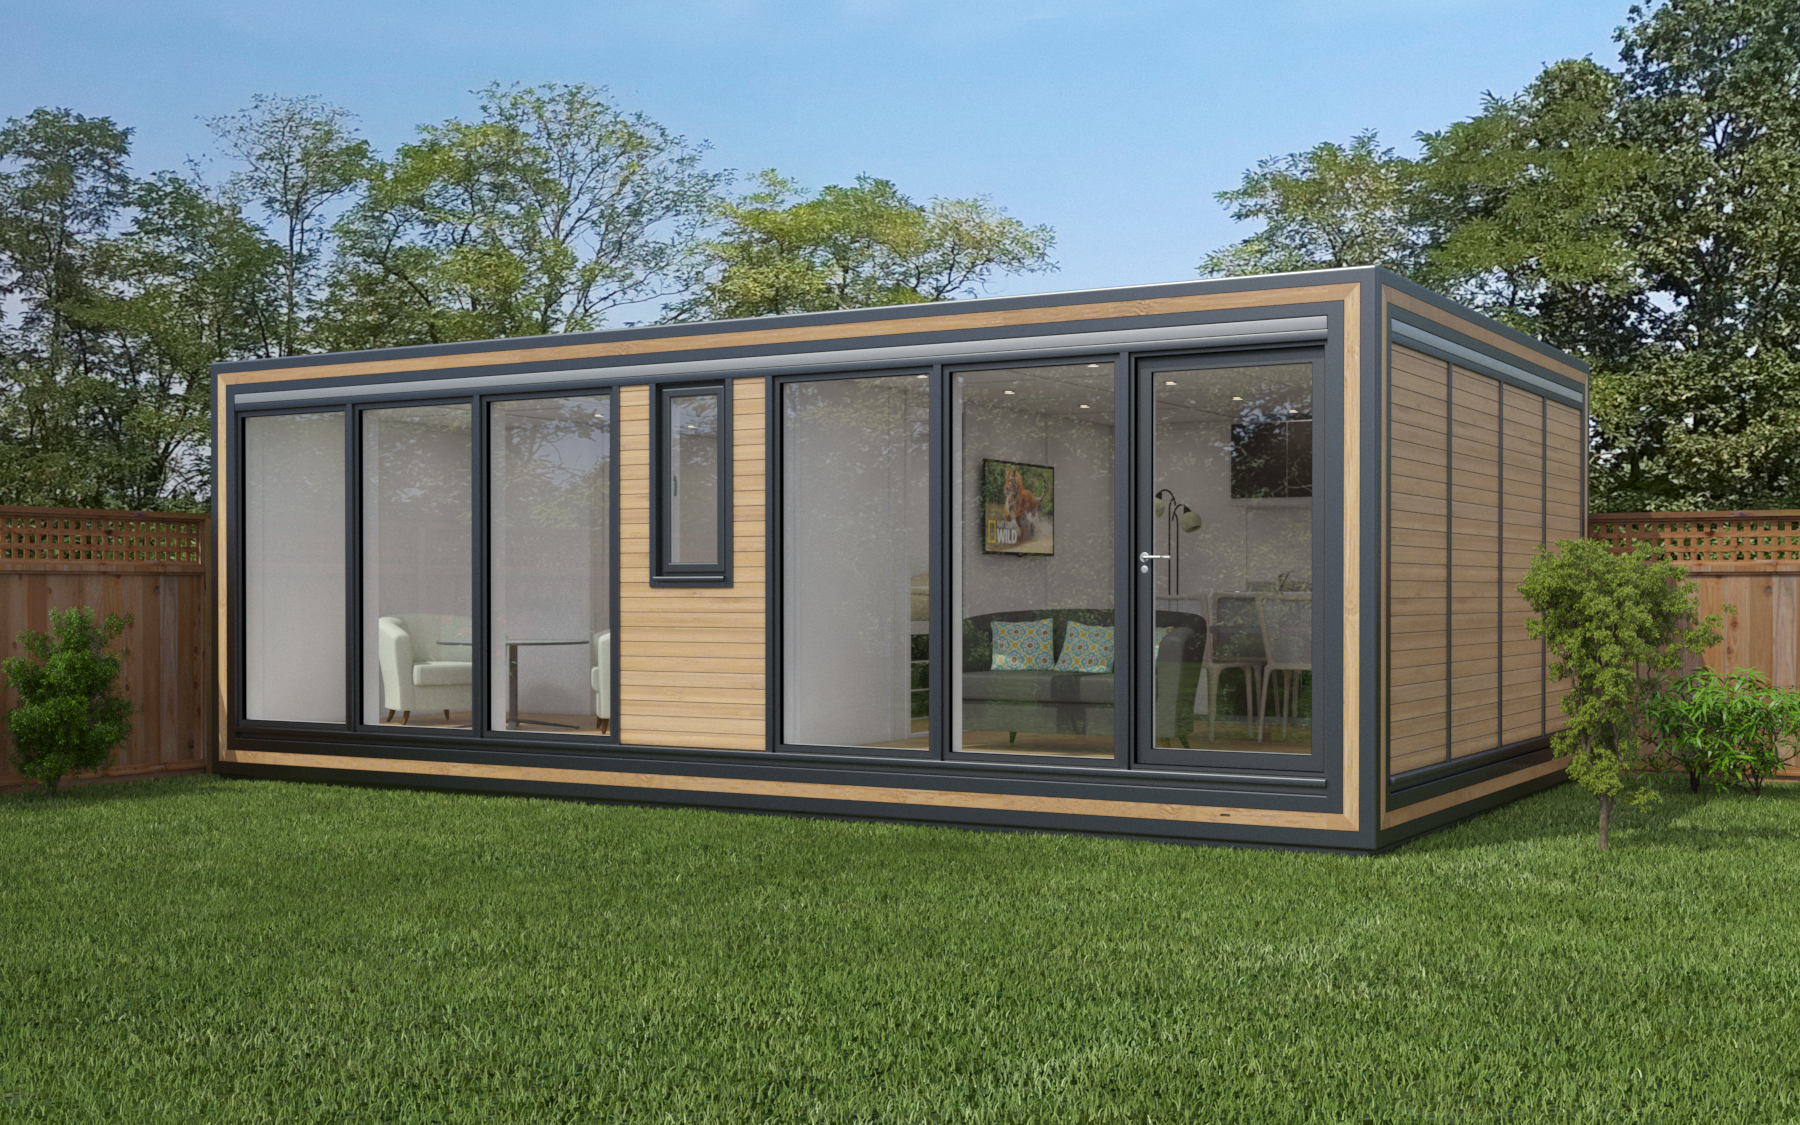 ZEDBOX 740  (7 x 4)  Internal Size: 7472 x 4259  External Size: 7942 x 4729  Bed Options: Single or Double or Two Doubles  Kitchen Options: Micro Kitchen or Kitchen  Wet Room Options: Yes  Portico: No  Price:  £43,000    Optional Extras    Request Zedbox Catalogue